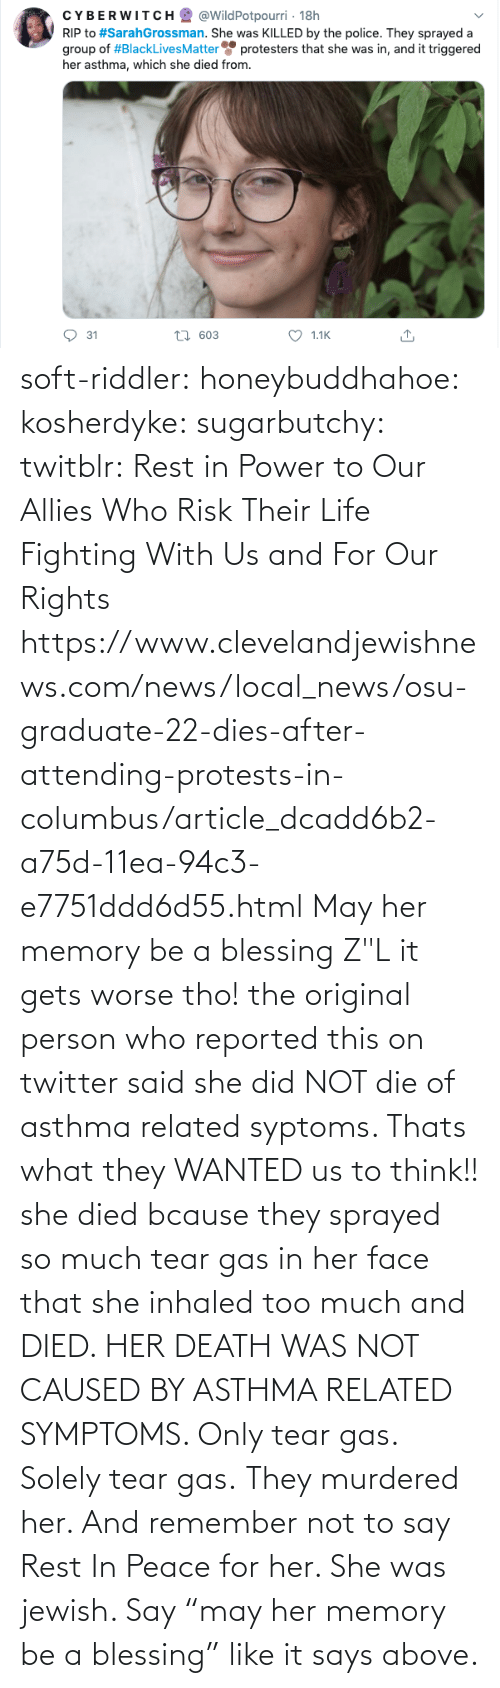 "What They: soft-riddler:  honeybuddhahoe:  kosherdyke:  sugarbutchy:  twitblr: Rest in Power to Our Allies Who Risk Their Life Fighting With Us and For Our Rights https://www.clevelandjewishnews.com/news/local_news/osu-graduate-22-dies-after-attending-protests-in-columbus/article_dcadd6b2-a75d-11ea-94c3-e7751ddd6d55.html    May her memory be a blessing Z""L  it gets worse tho! the original person who reported this on twitter said she did NOT die of asthma related syptoms. Thats what they WANTED us to think!! she died bcause they sprayed so much tear gas in her face that she inhaled too much and DIED. HER DEATH WAS NOT CAUSED BY ASTHMA RELATED SYMPTOMS. Only tear gas. Solely tear gas. They murdered her.     And remember not to say Rest In Peace for her. She was jewish. Say ""may her memory be a blessing"" like it says above."